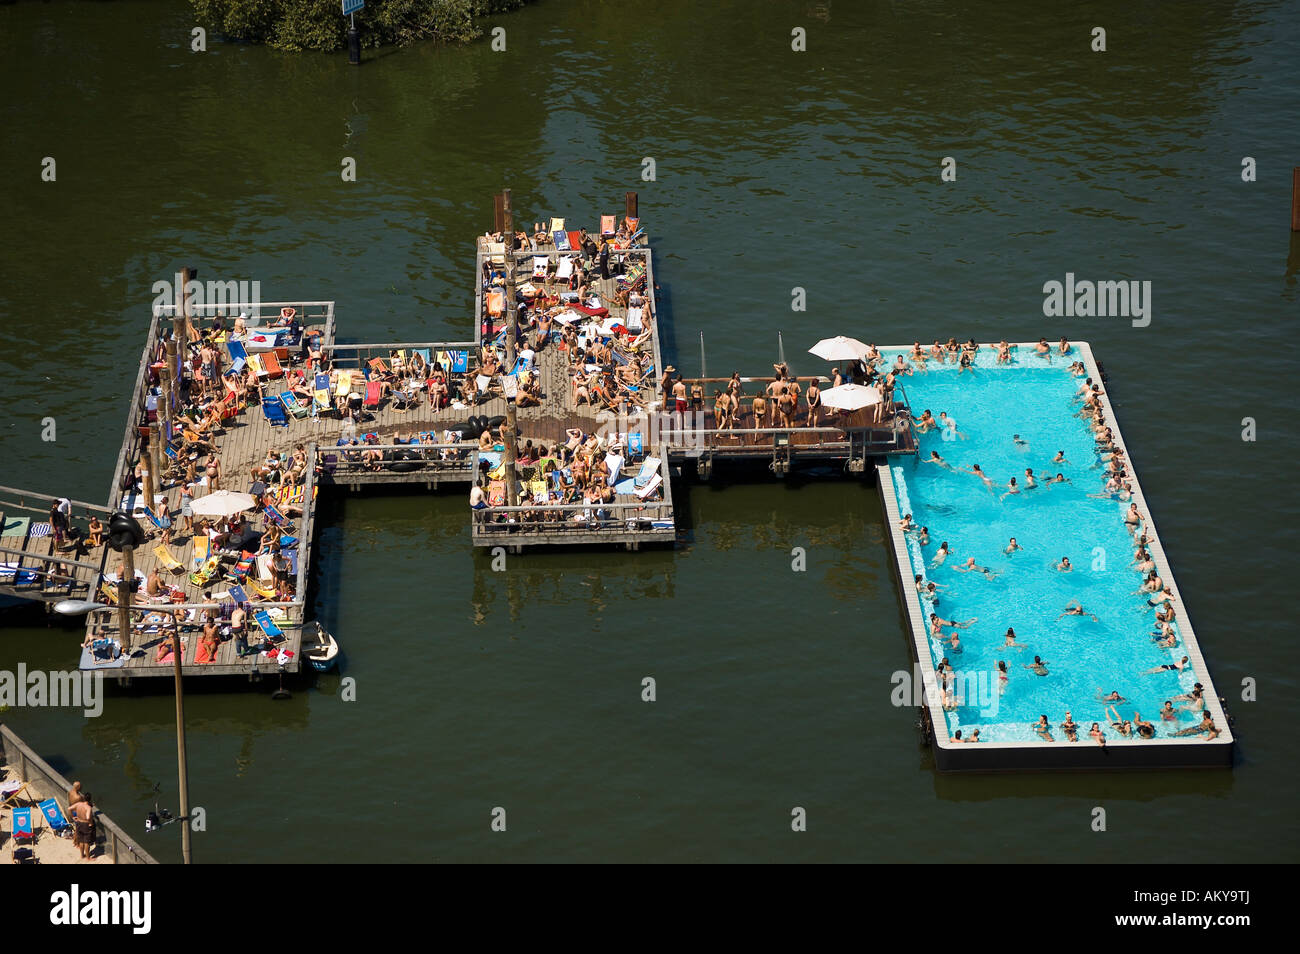 badeschiff bathing ship public swimming pool river spree stock photo 15096881 alamy. Black Bedroom Furniture Sets. Home Design Ideas